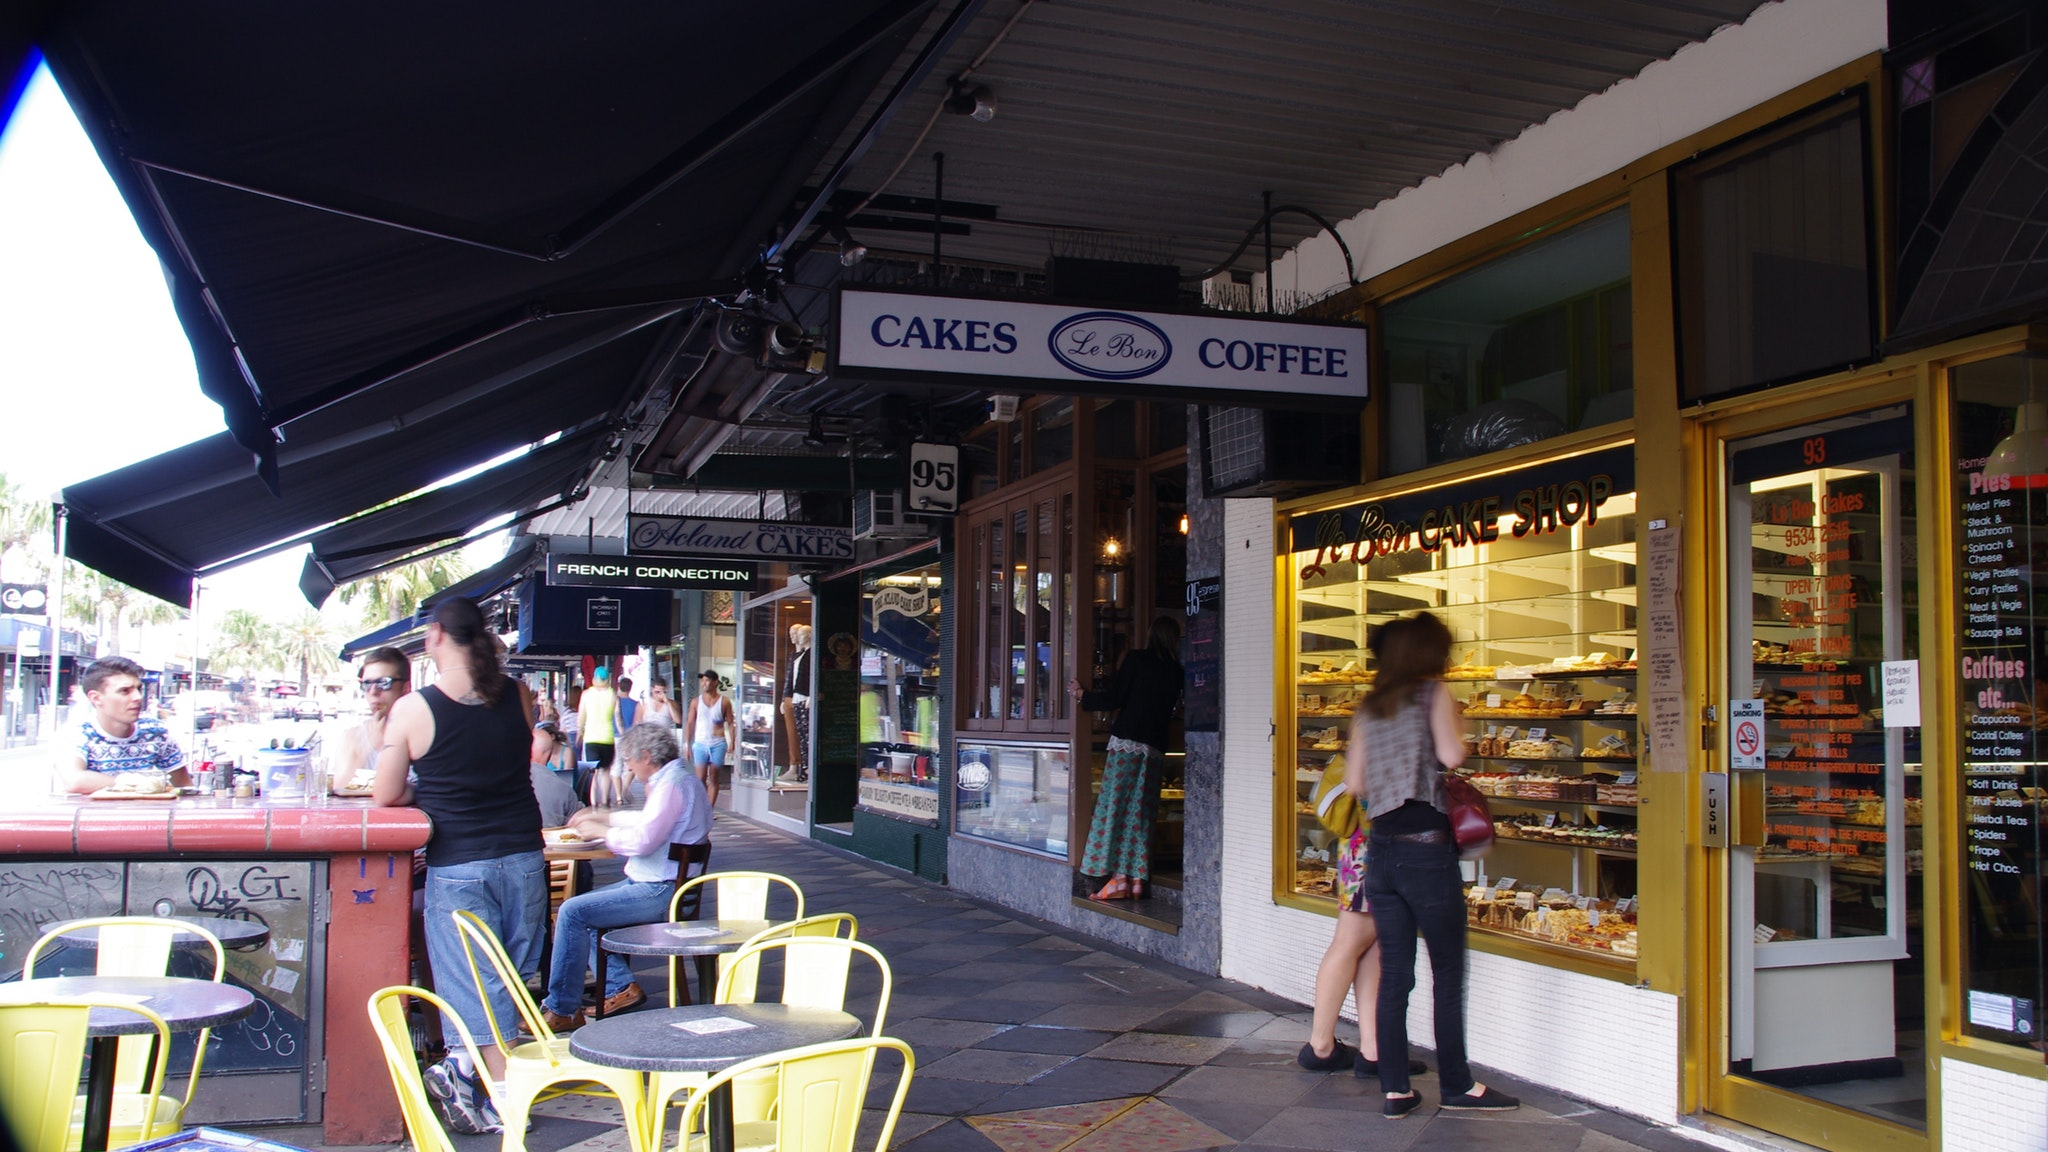 Shopping for treats in Acland Street St Kilda